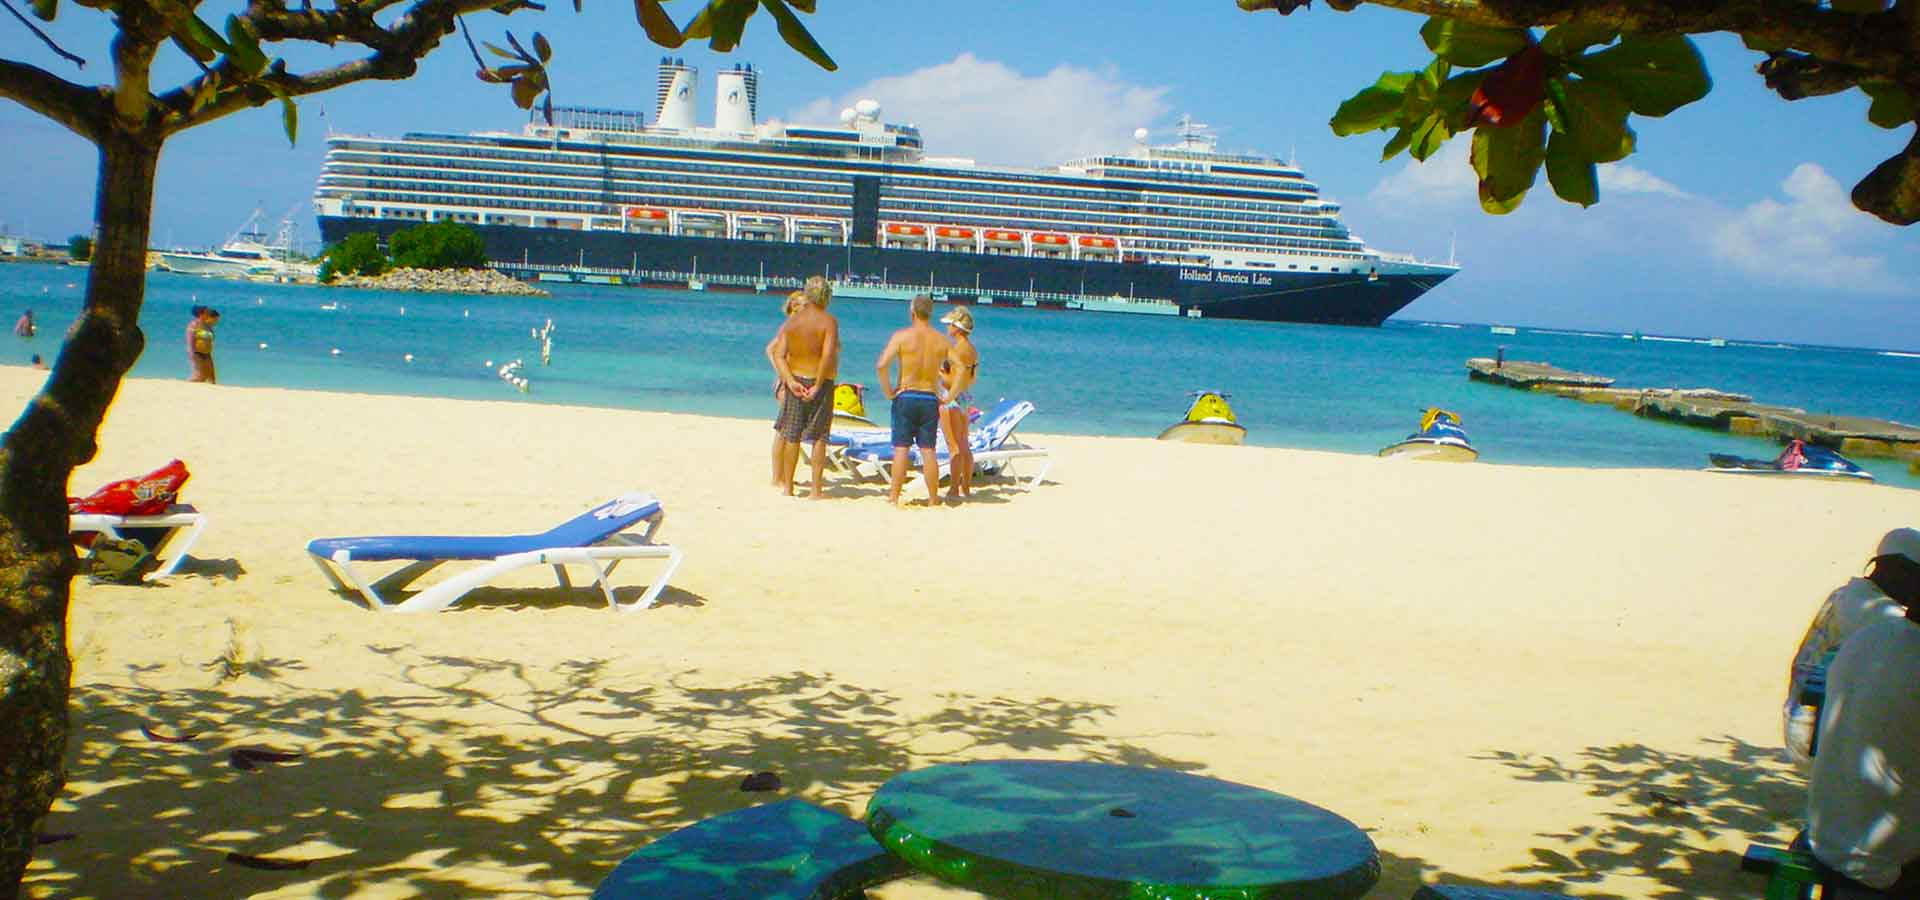 Cruise Ship entering the Ocho Rios Pier